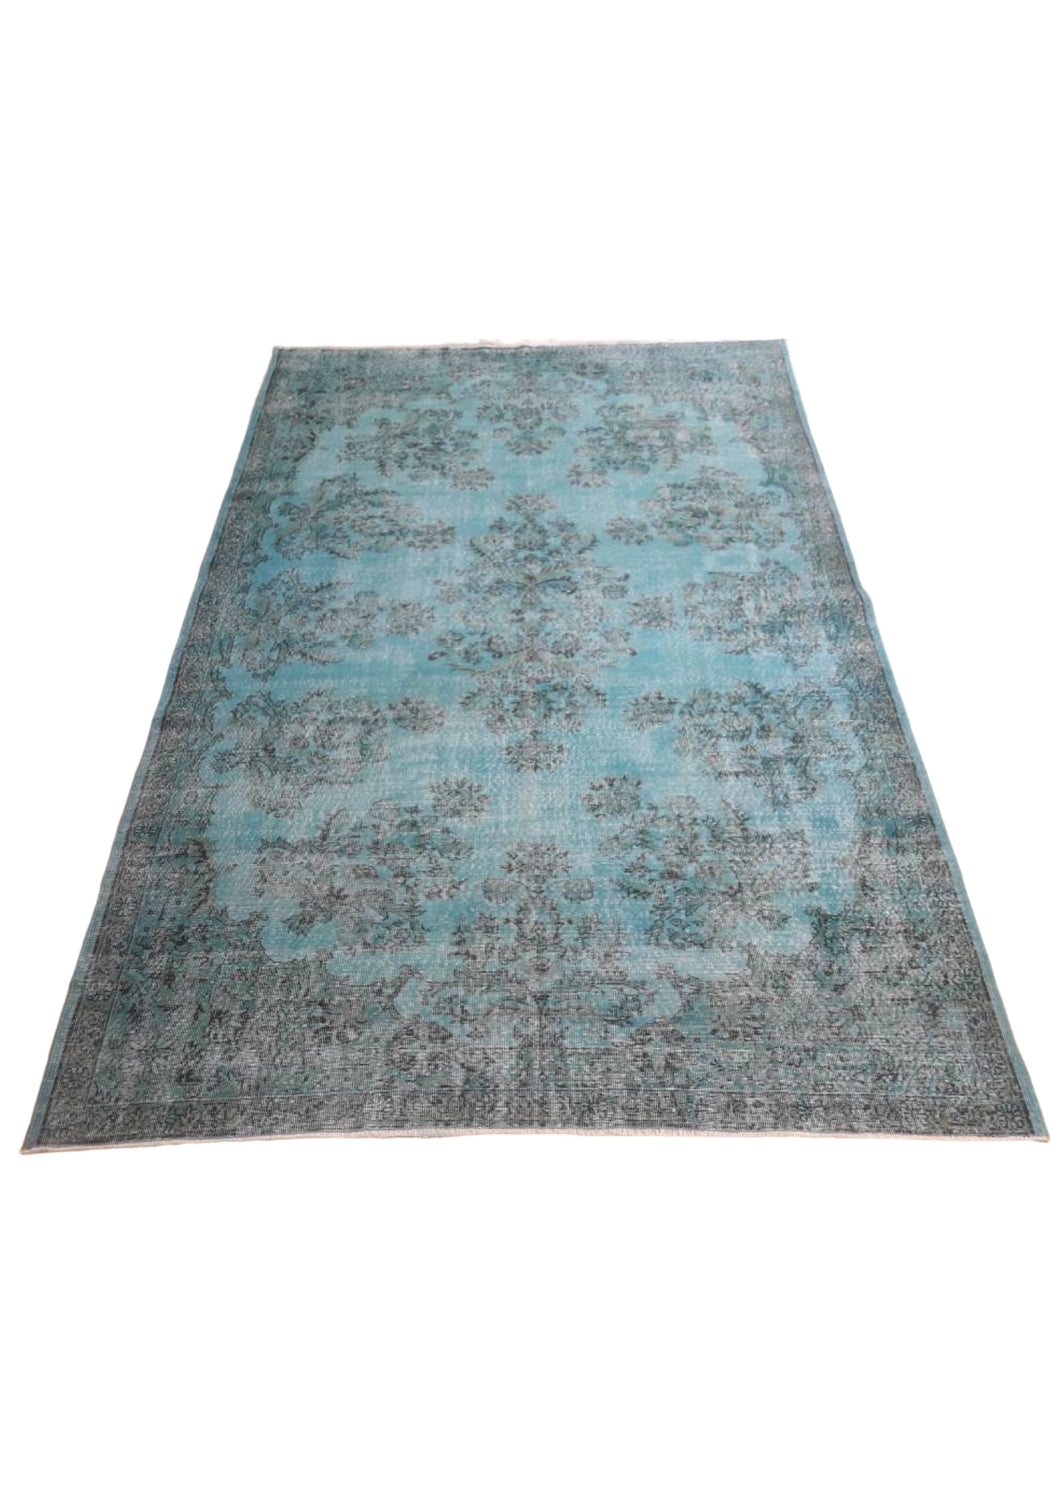 Vintage Overdyed Turkish Rug - 10'10